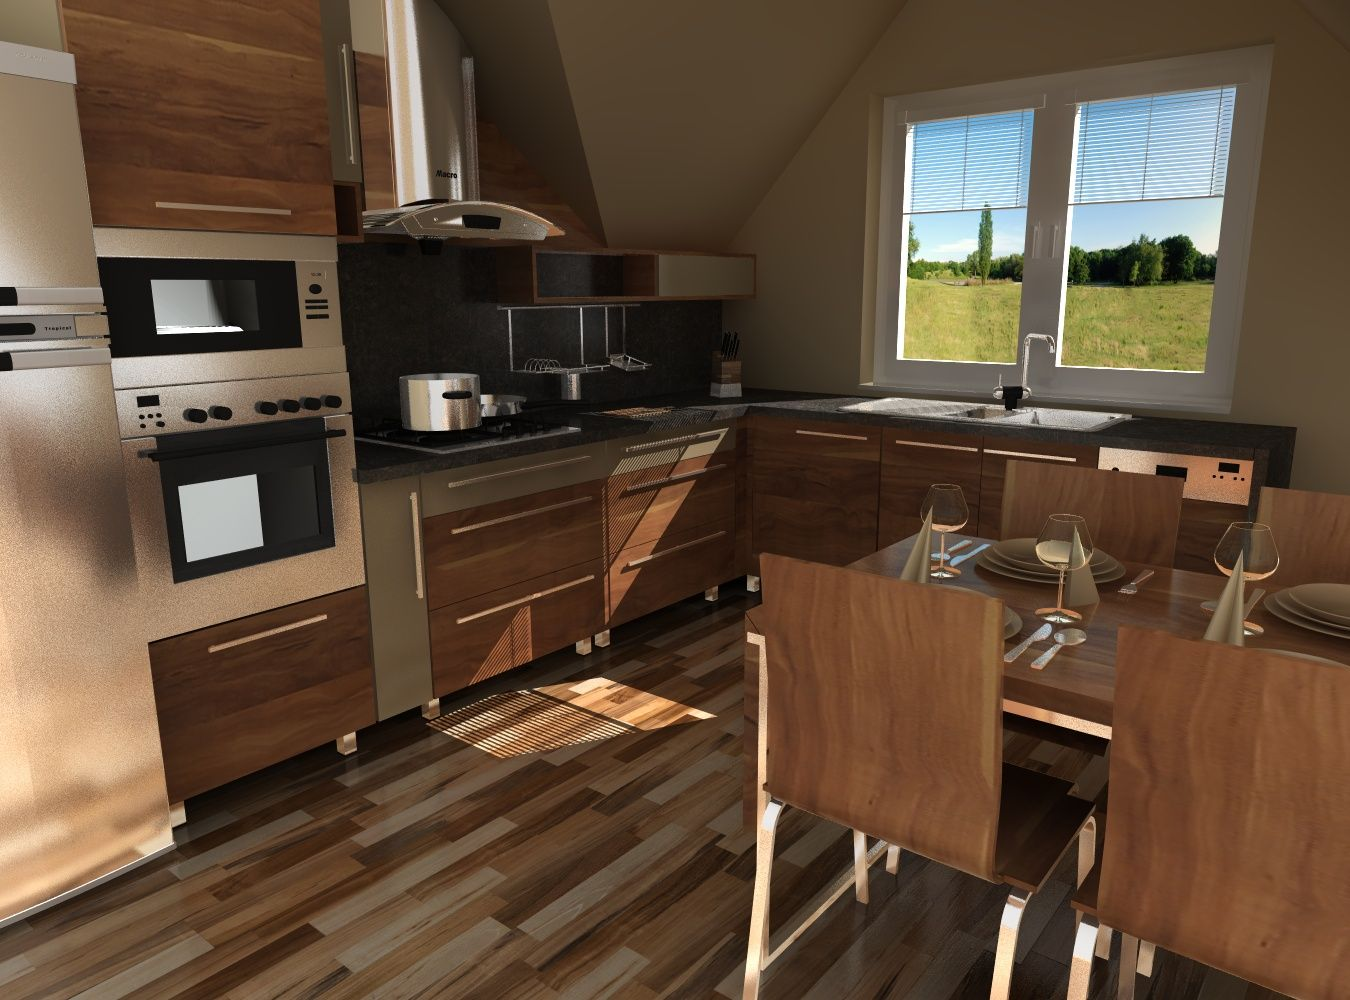 Kitchen 3D Model/rendering Created In TurboCAD